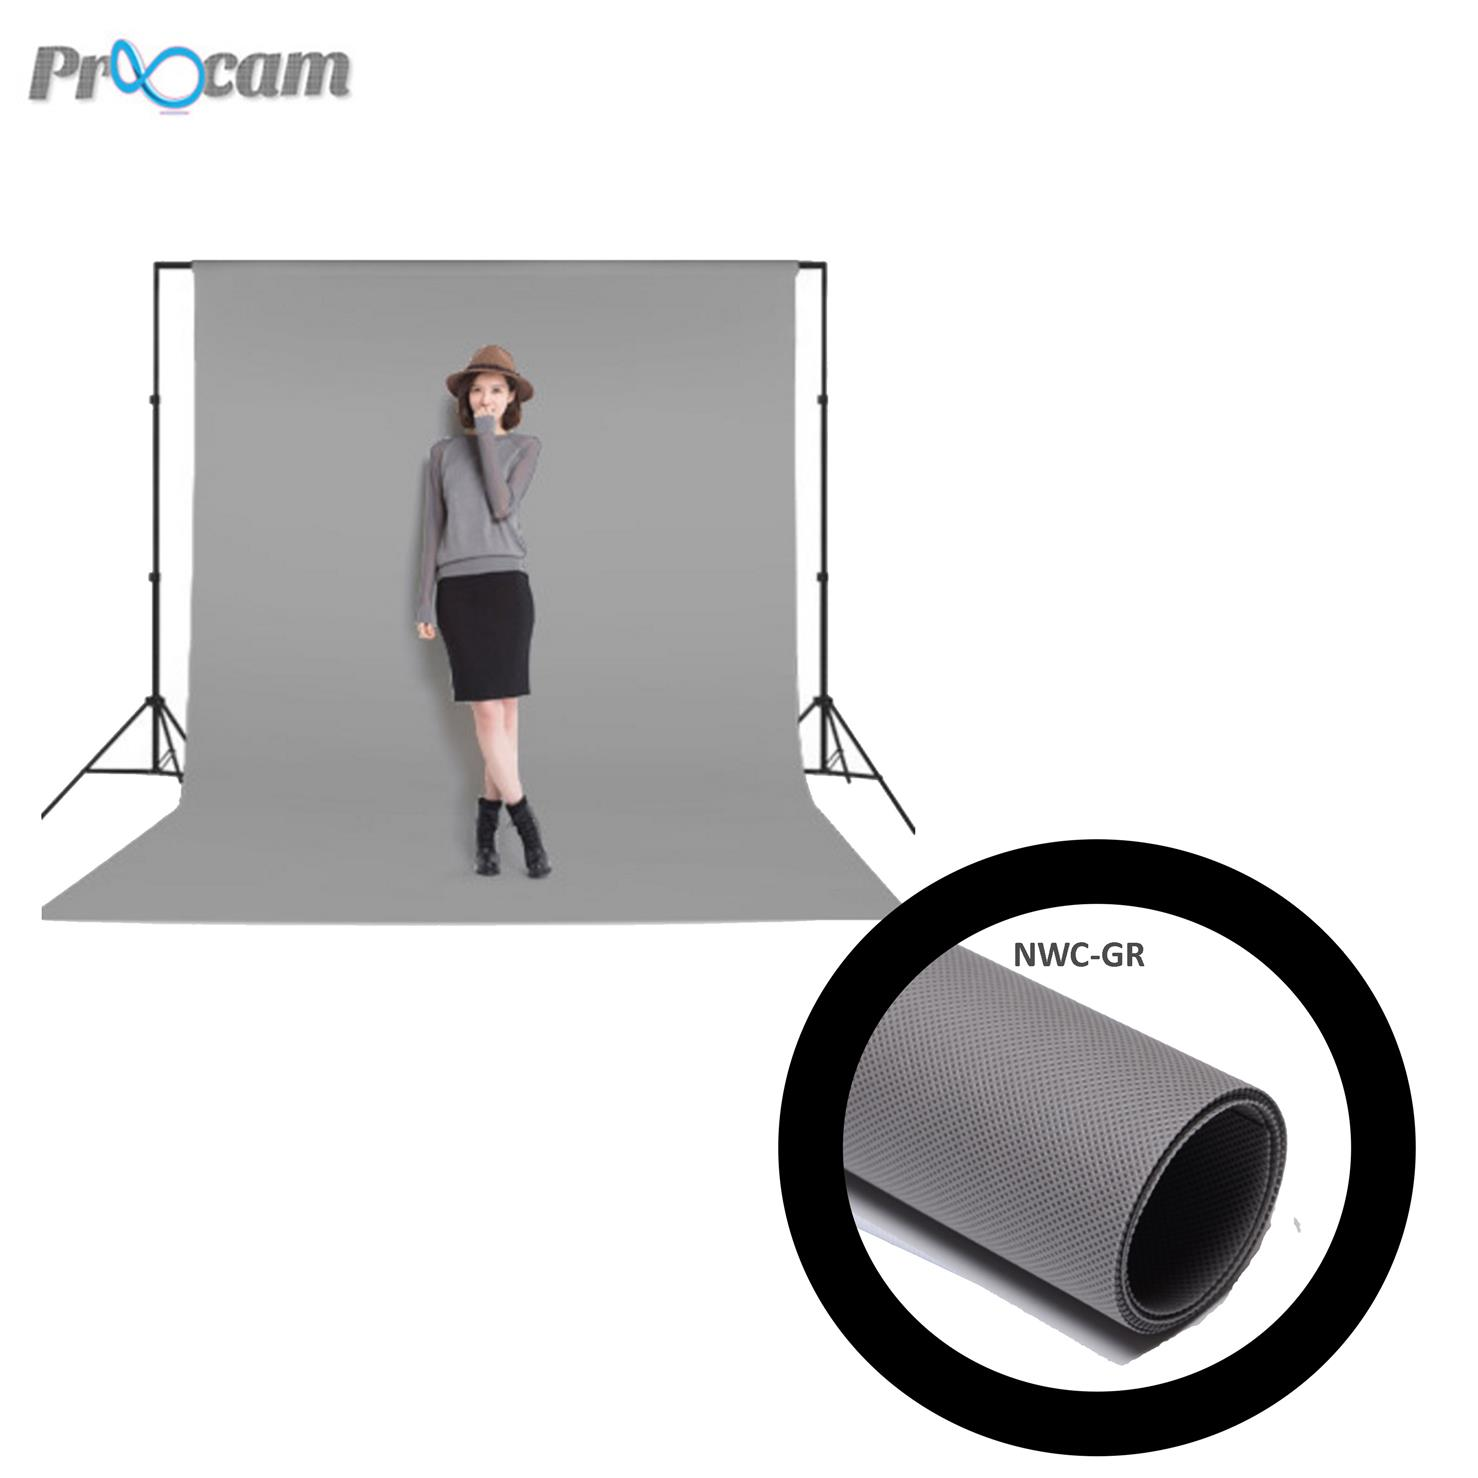 Proocam NWC-GR Non woven cloth Backdrop background -Grey(3X6meter)